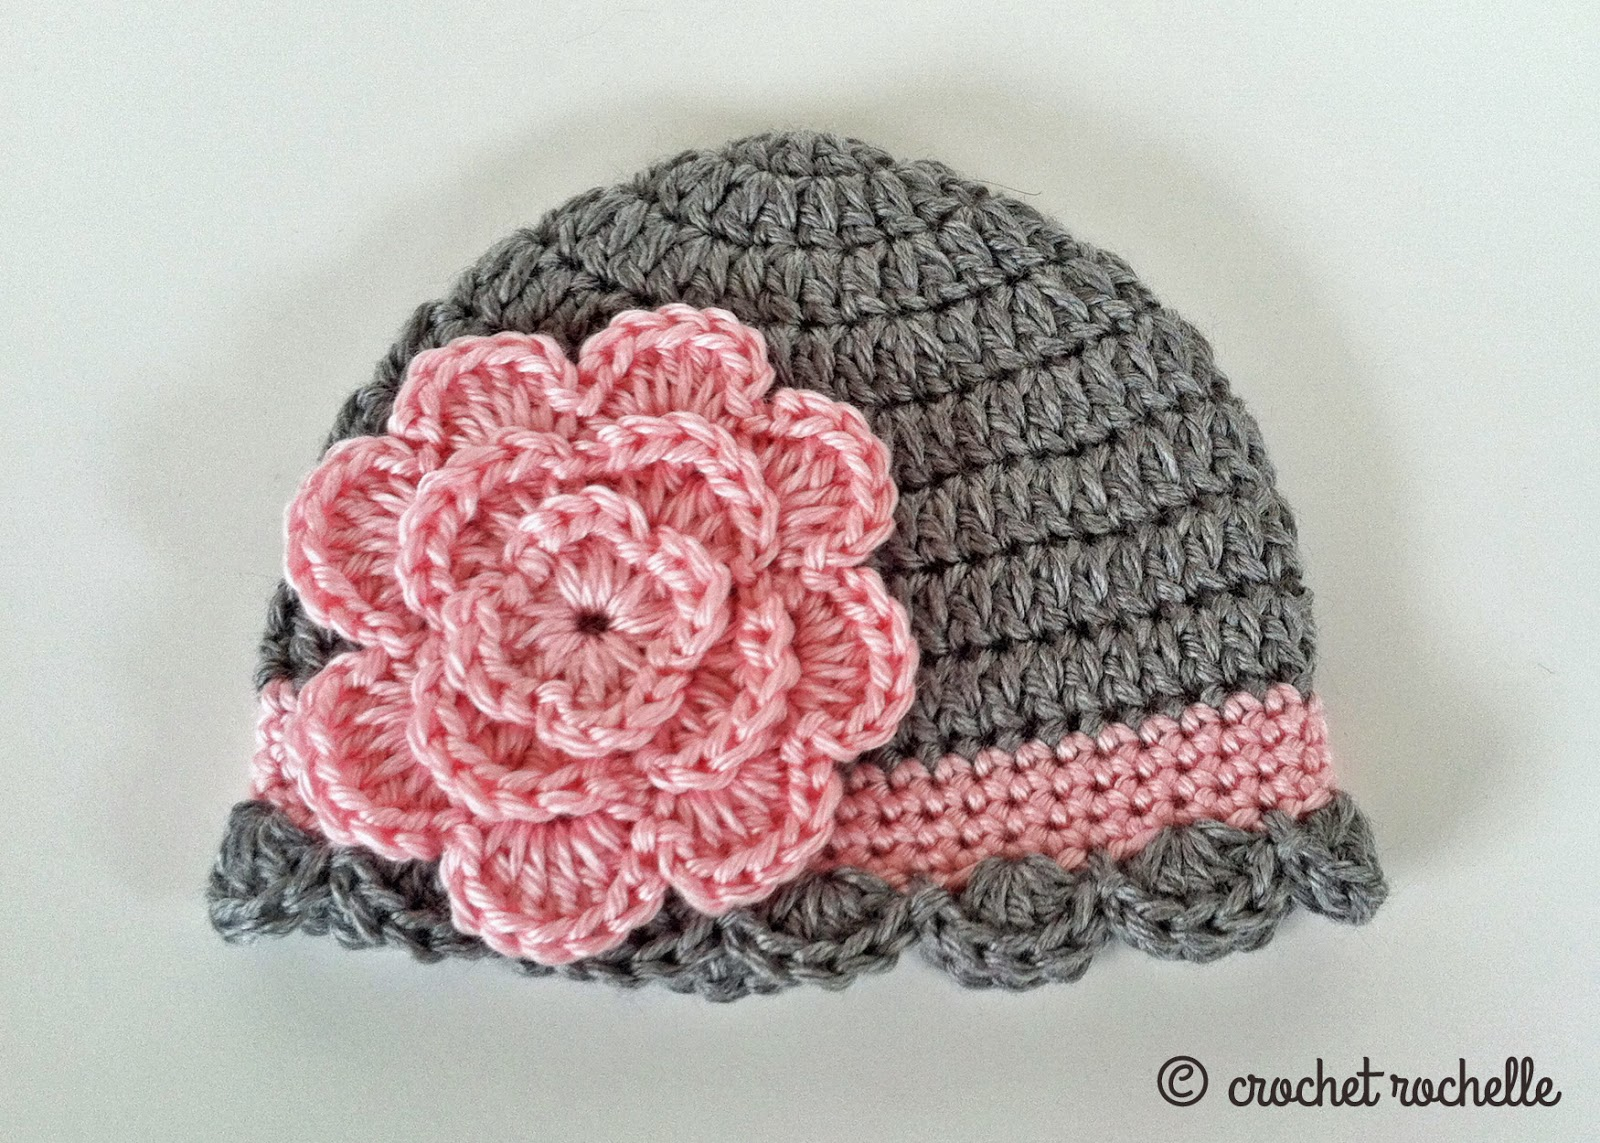 Crochet Baby Hat Patterns 6 Months : Crochet Rochelle: Pretty Baby Beanie